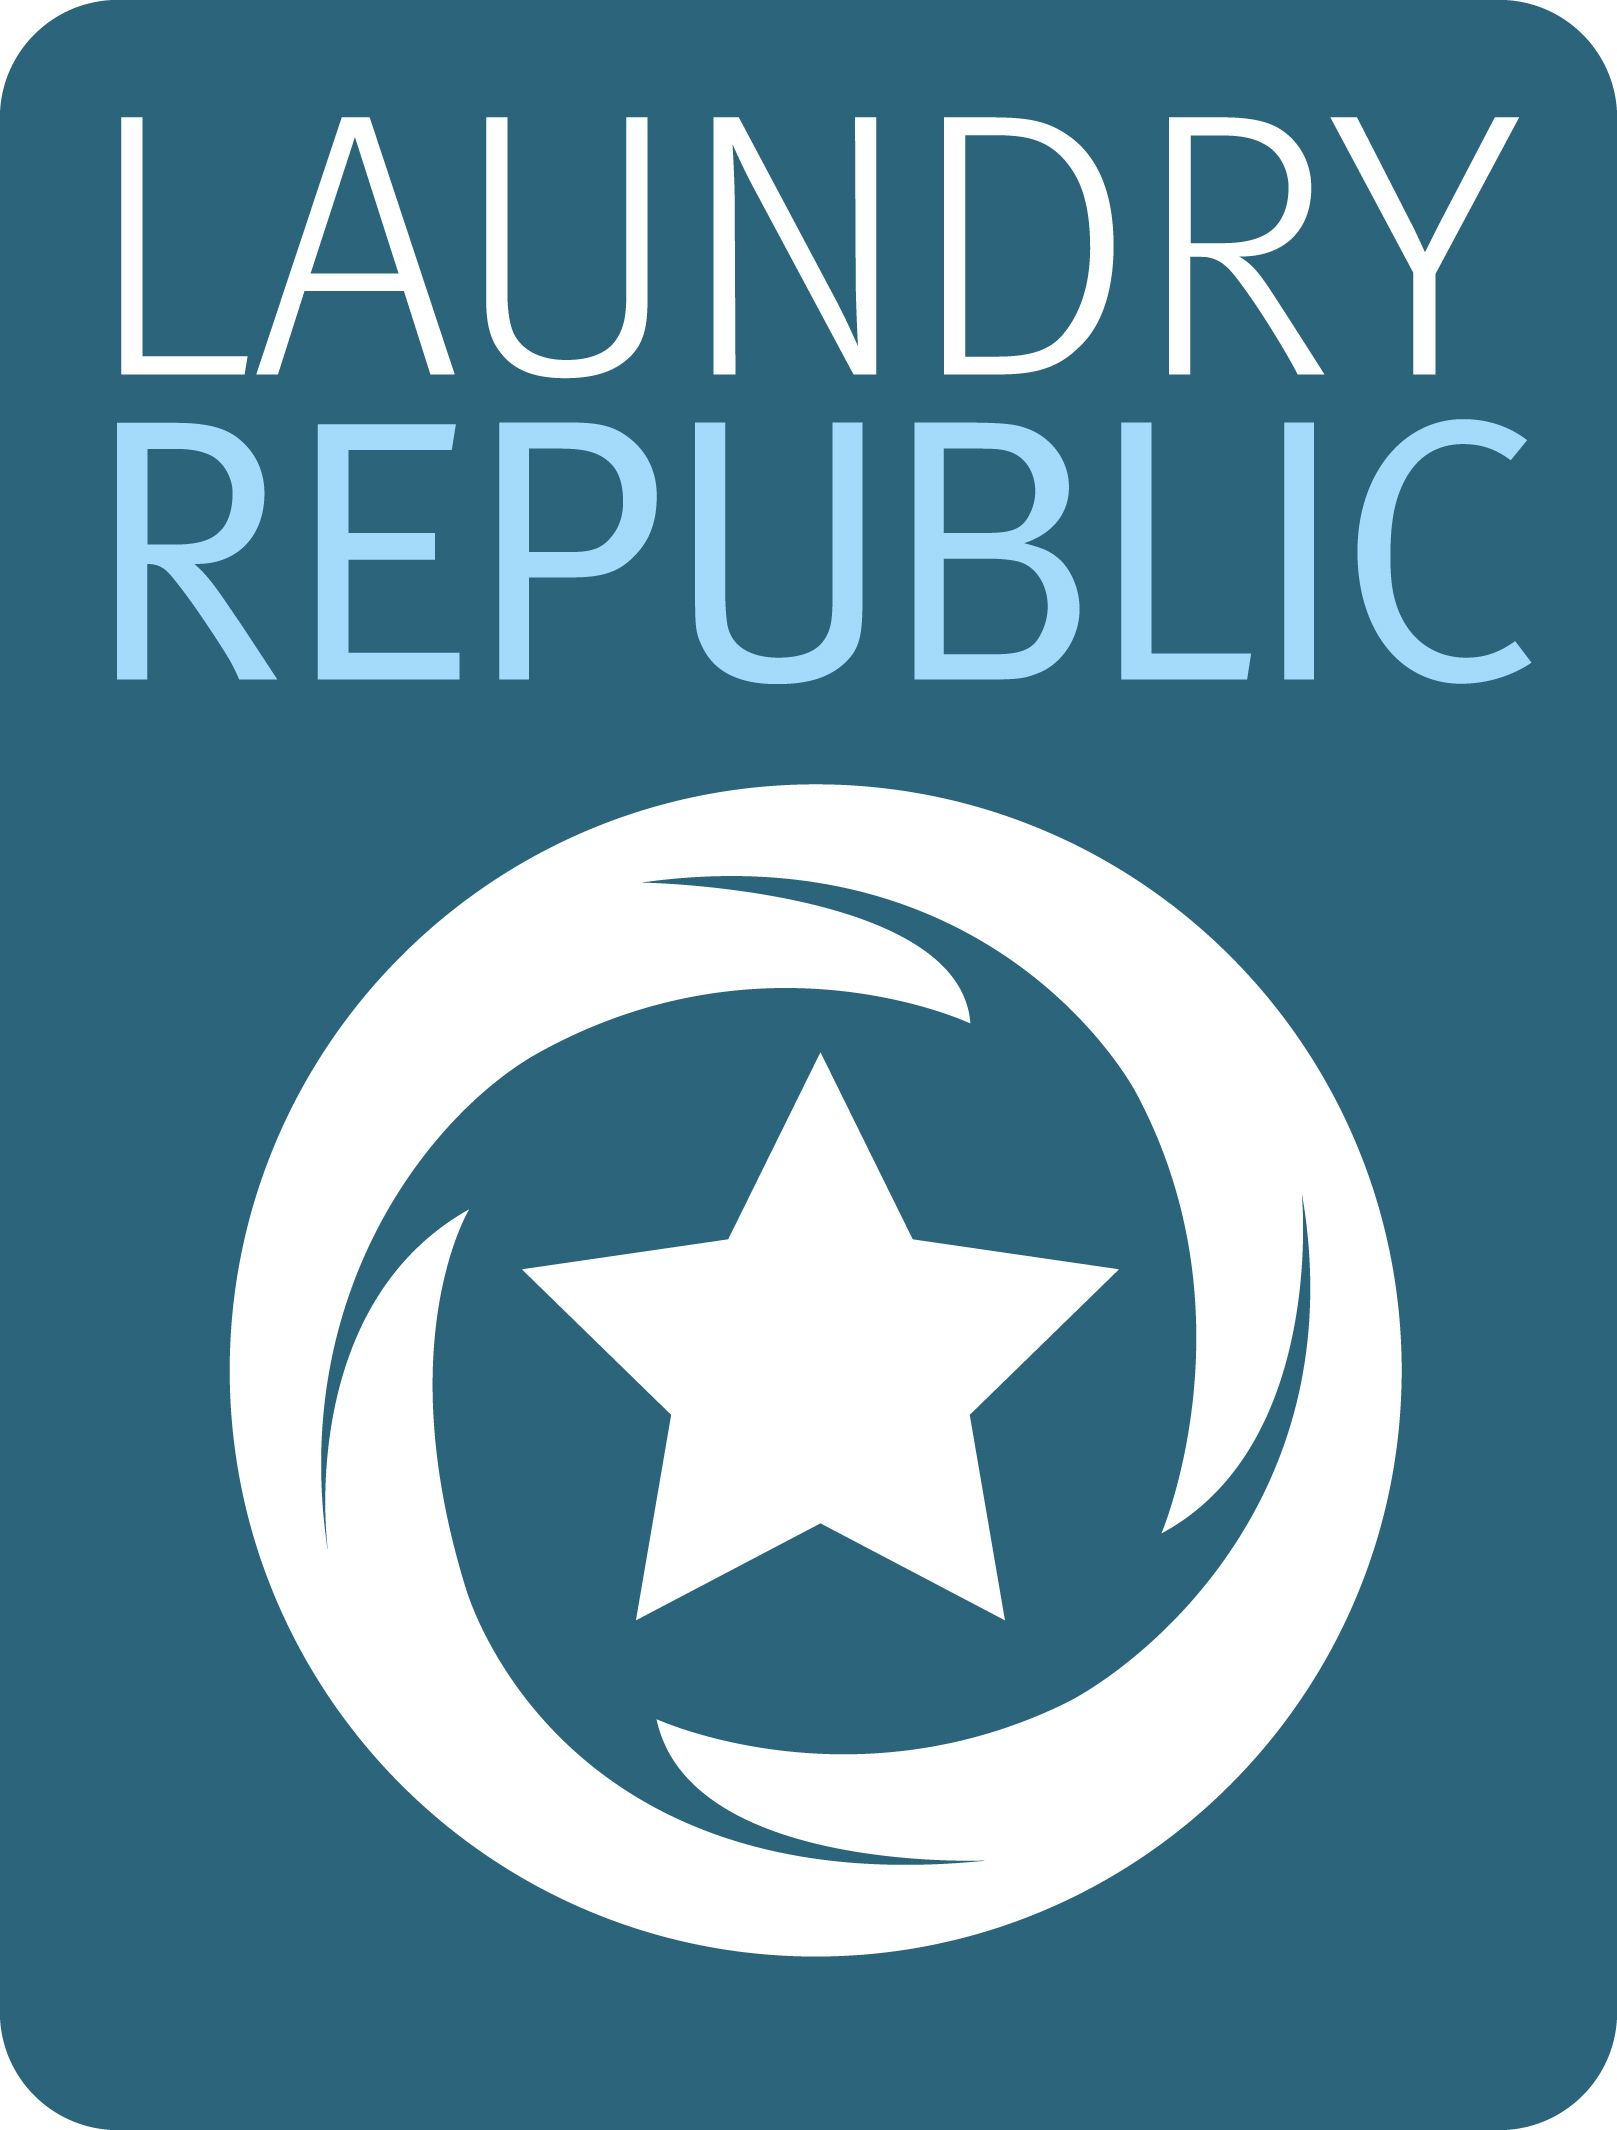 LaundryRepublic offers London a better way of doing dry